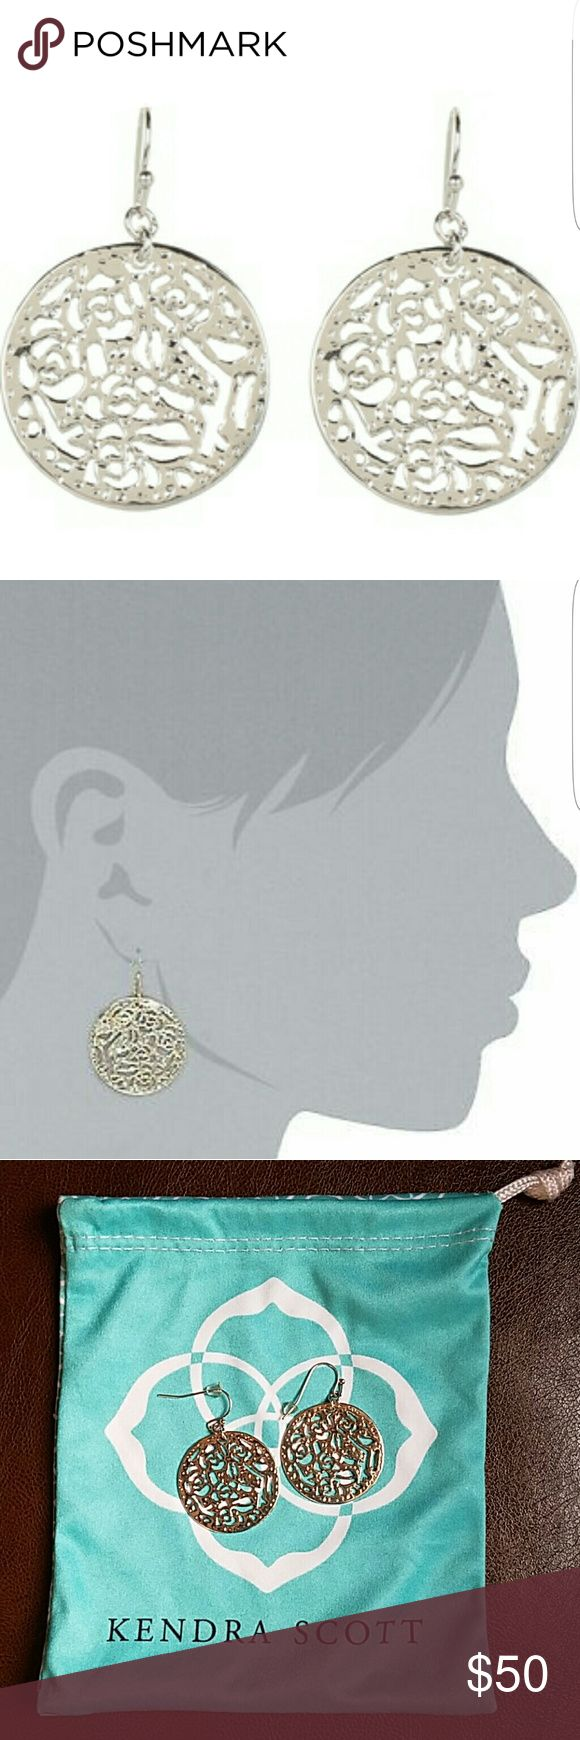 Kendra Scott Madina Earings Used few times in excellent condition. Price is firm. Kendra Scott Jewelry Earrings